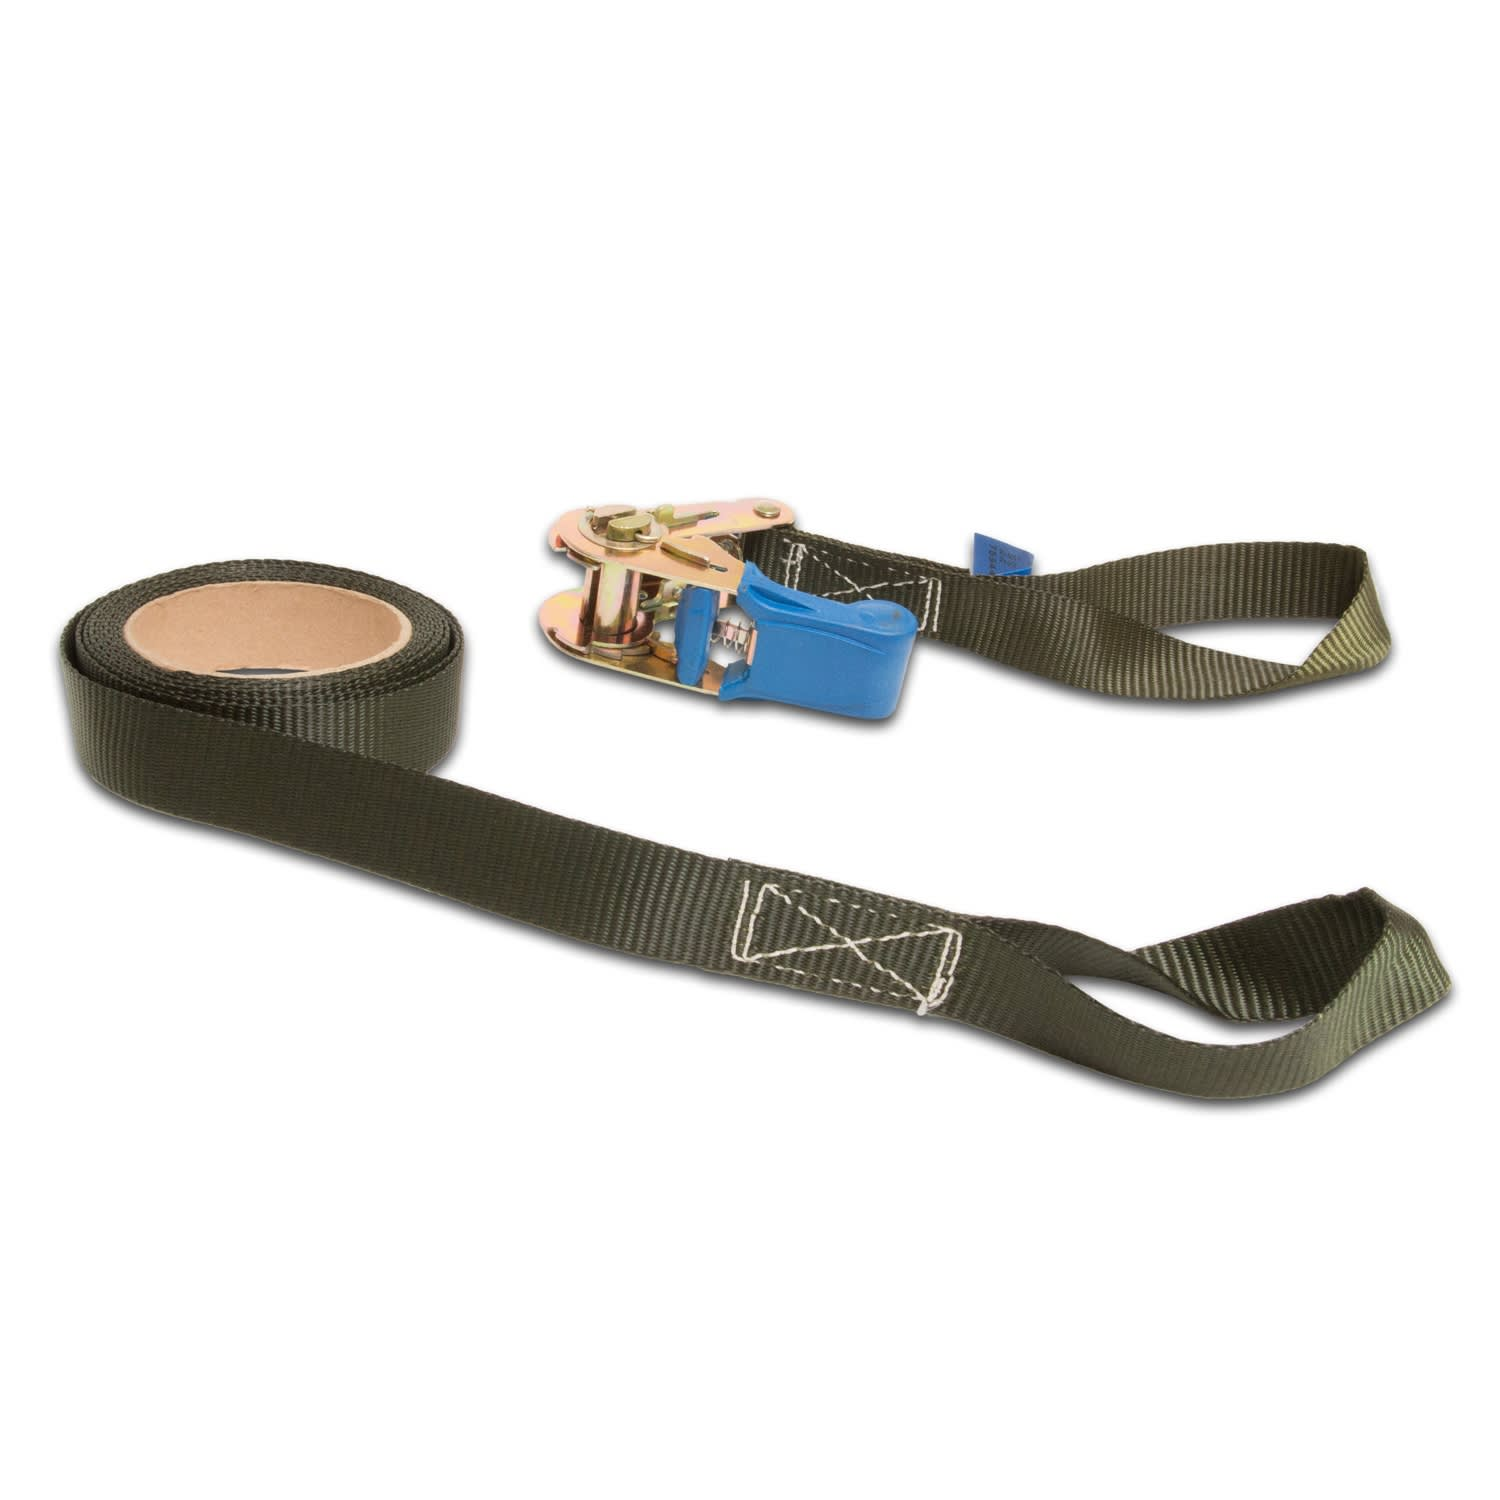 SecureTech Ratchet Strap 25mmx3m